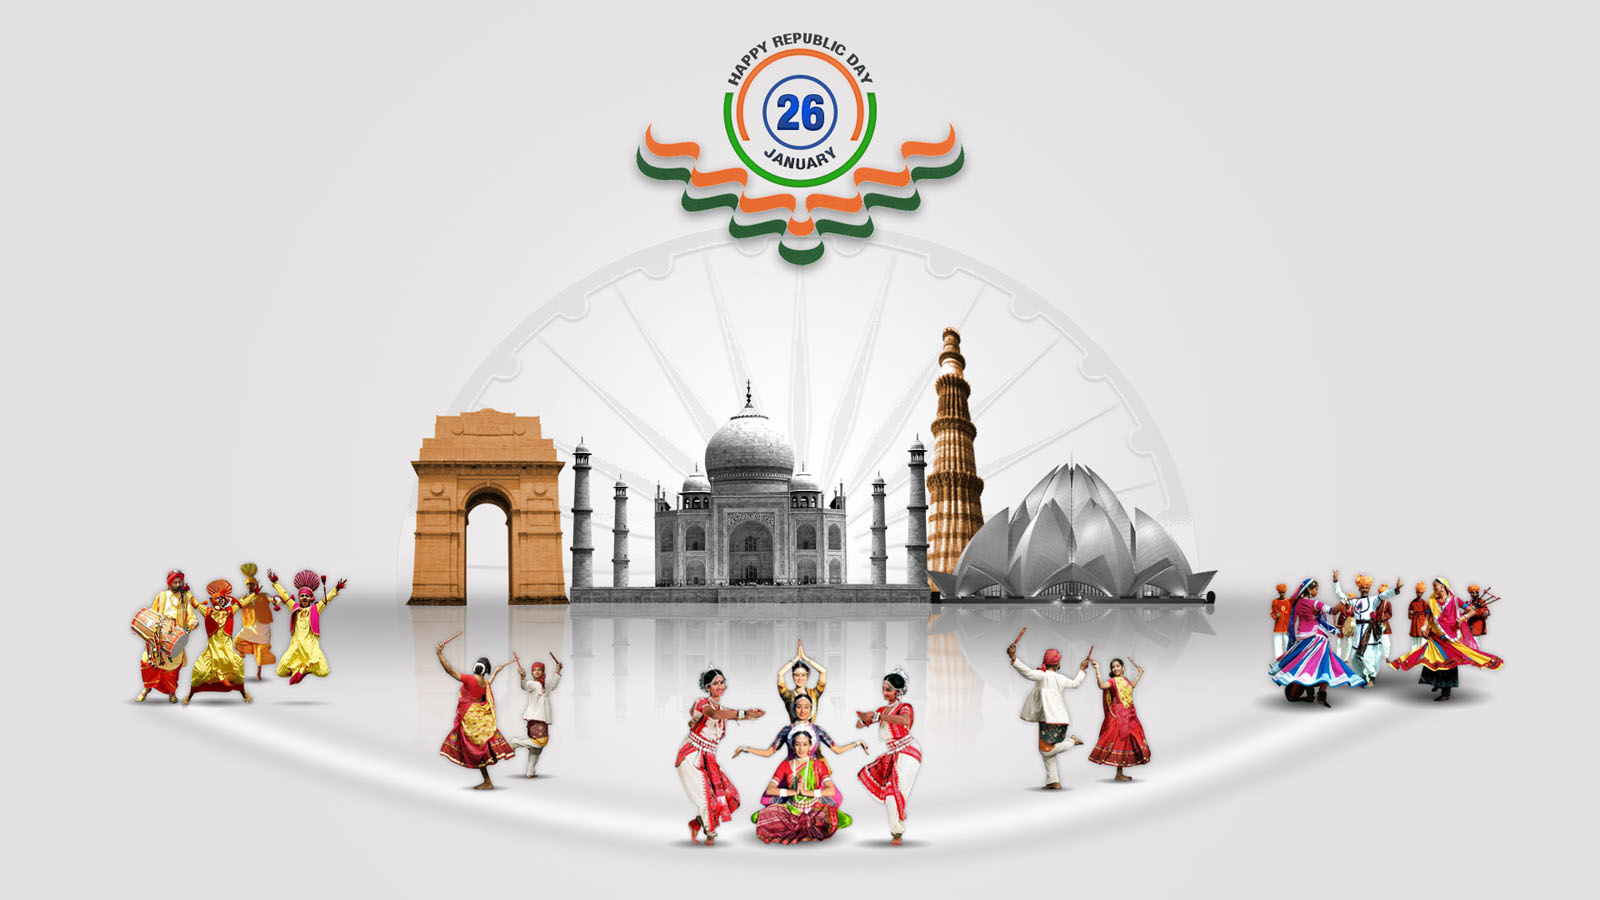 25 Beautiful Happy Republic Day Wishes And Wallpapers